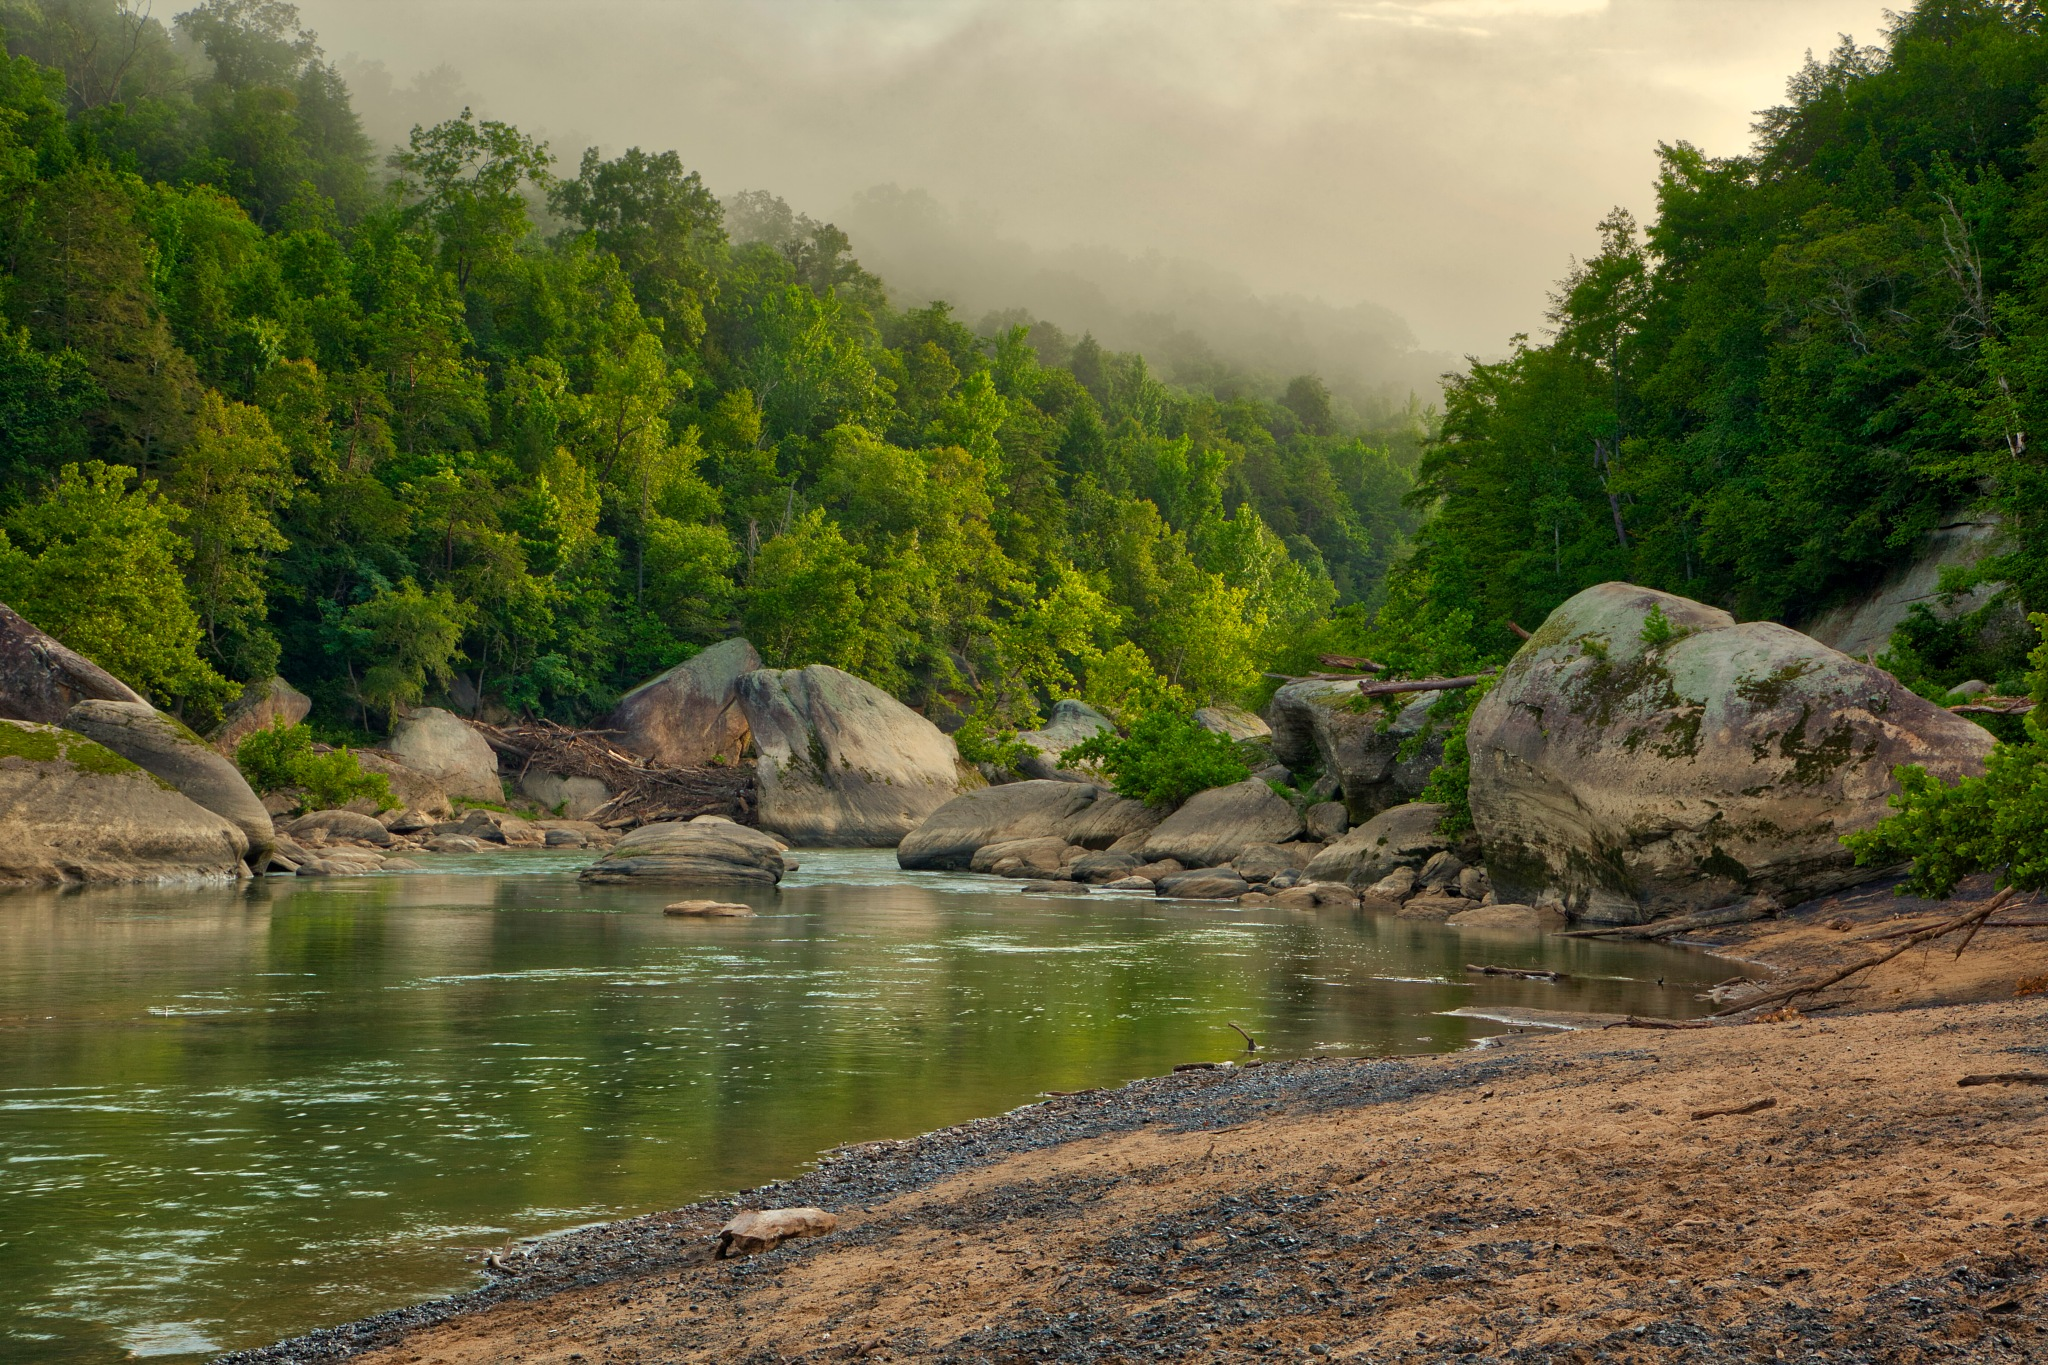 Cumberland River Early in the Morning by Kevin Kludy